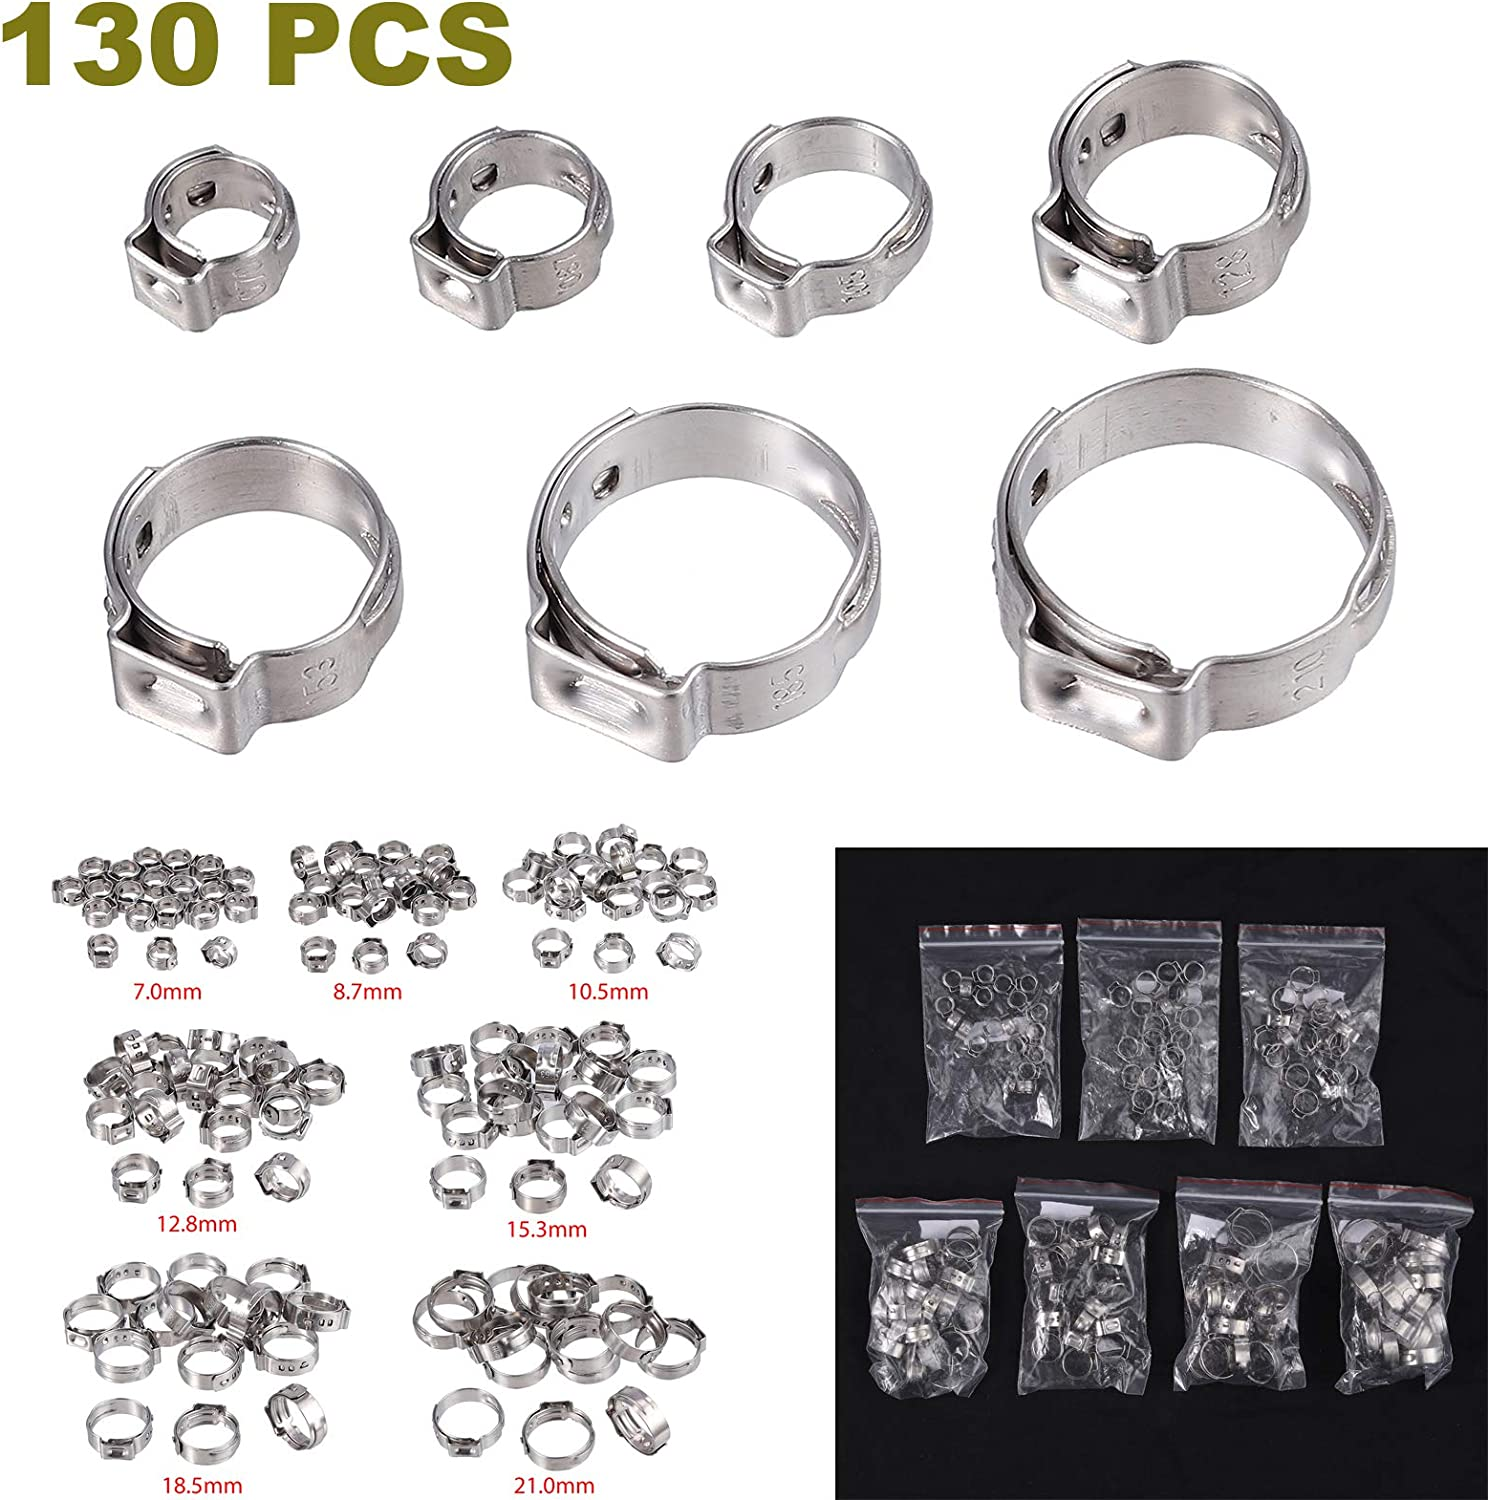 CAMWAY 130Pcs 7-21mm 304 Stainless Steel Single Ear Stepless Hose Clamps Assortment Cinch Clamp Rings